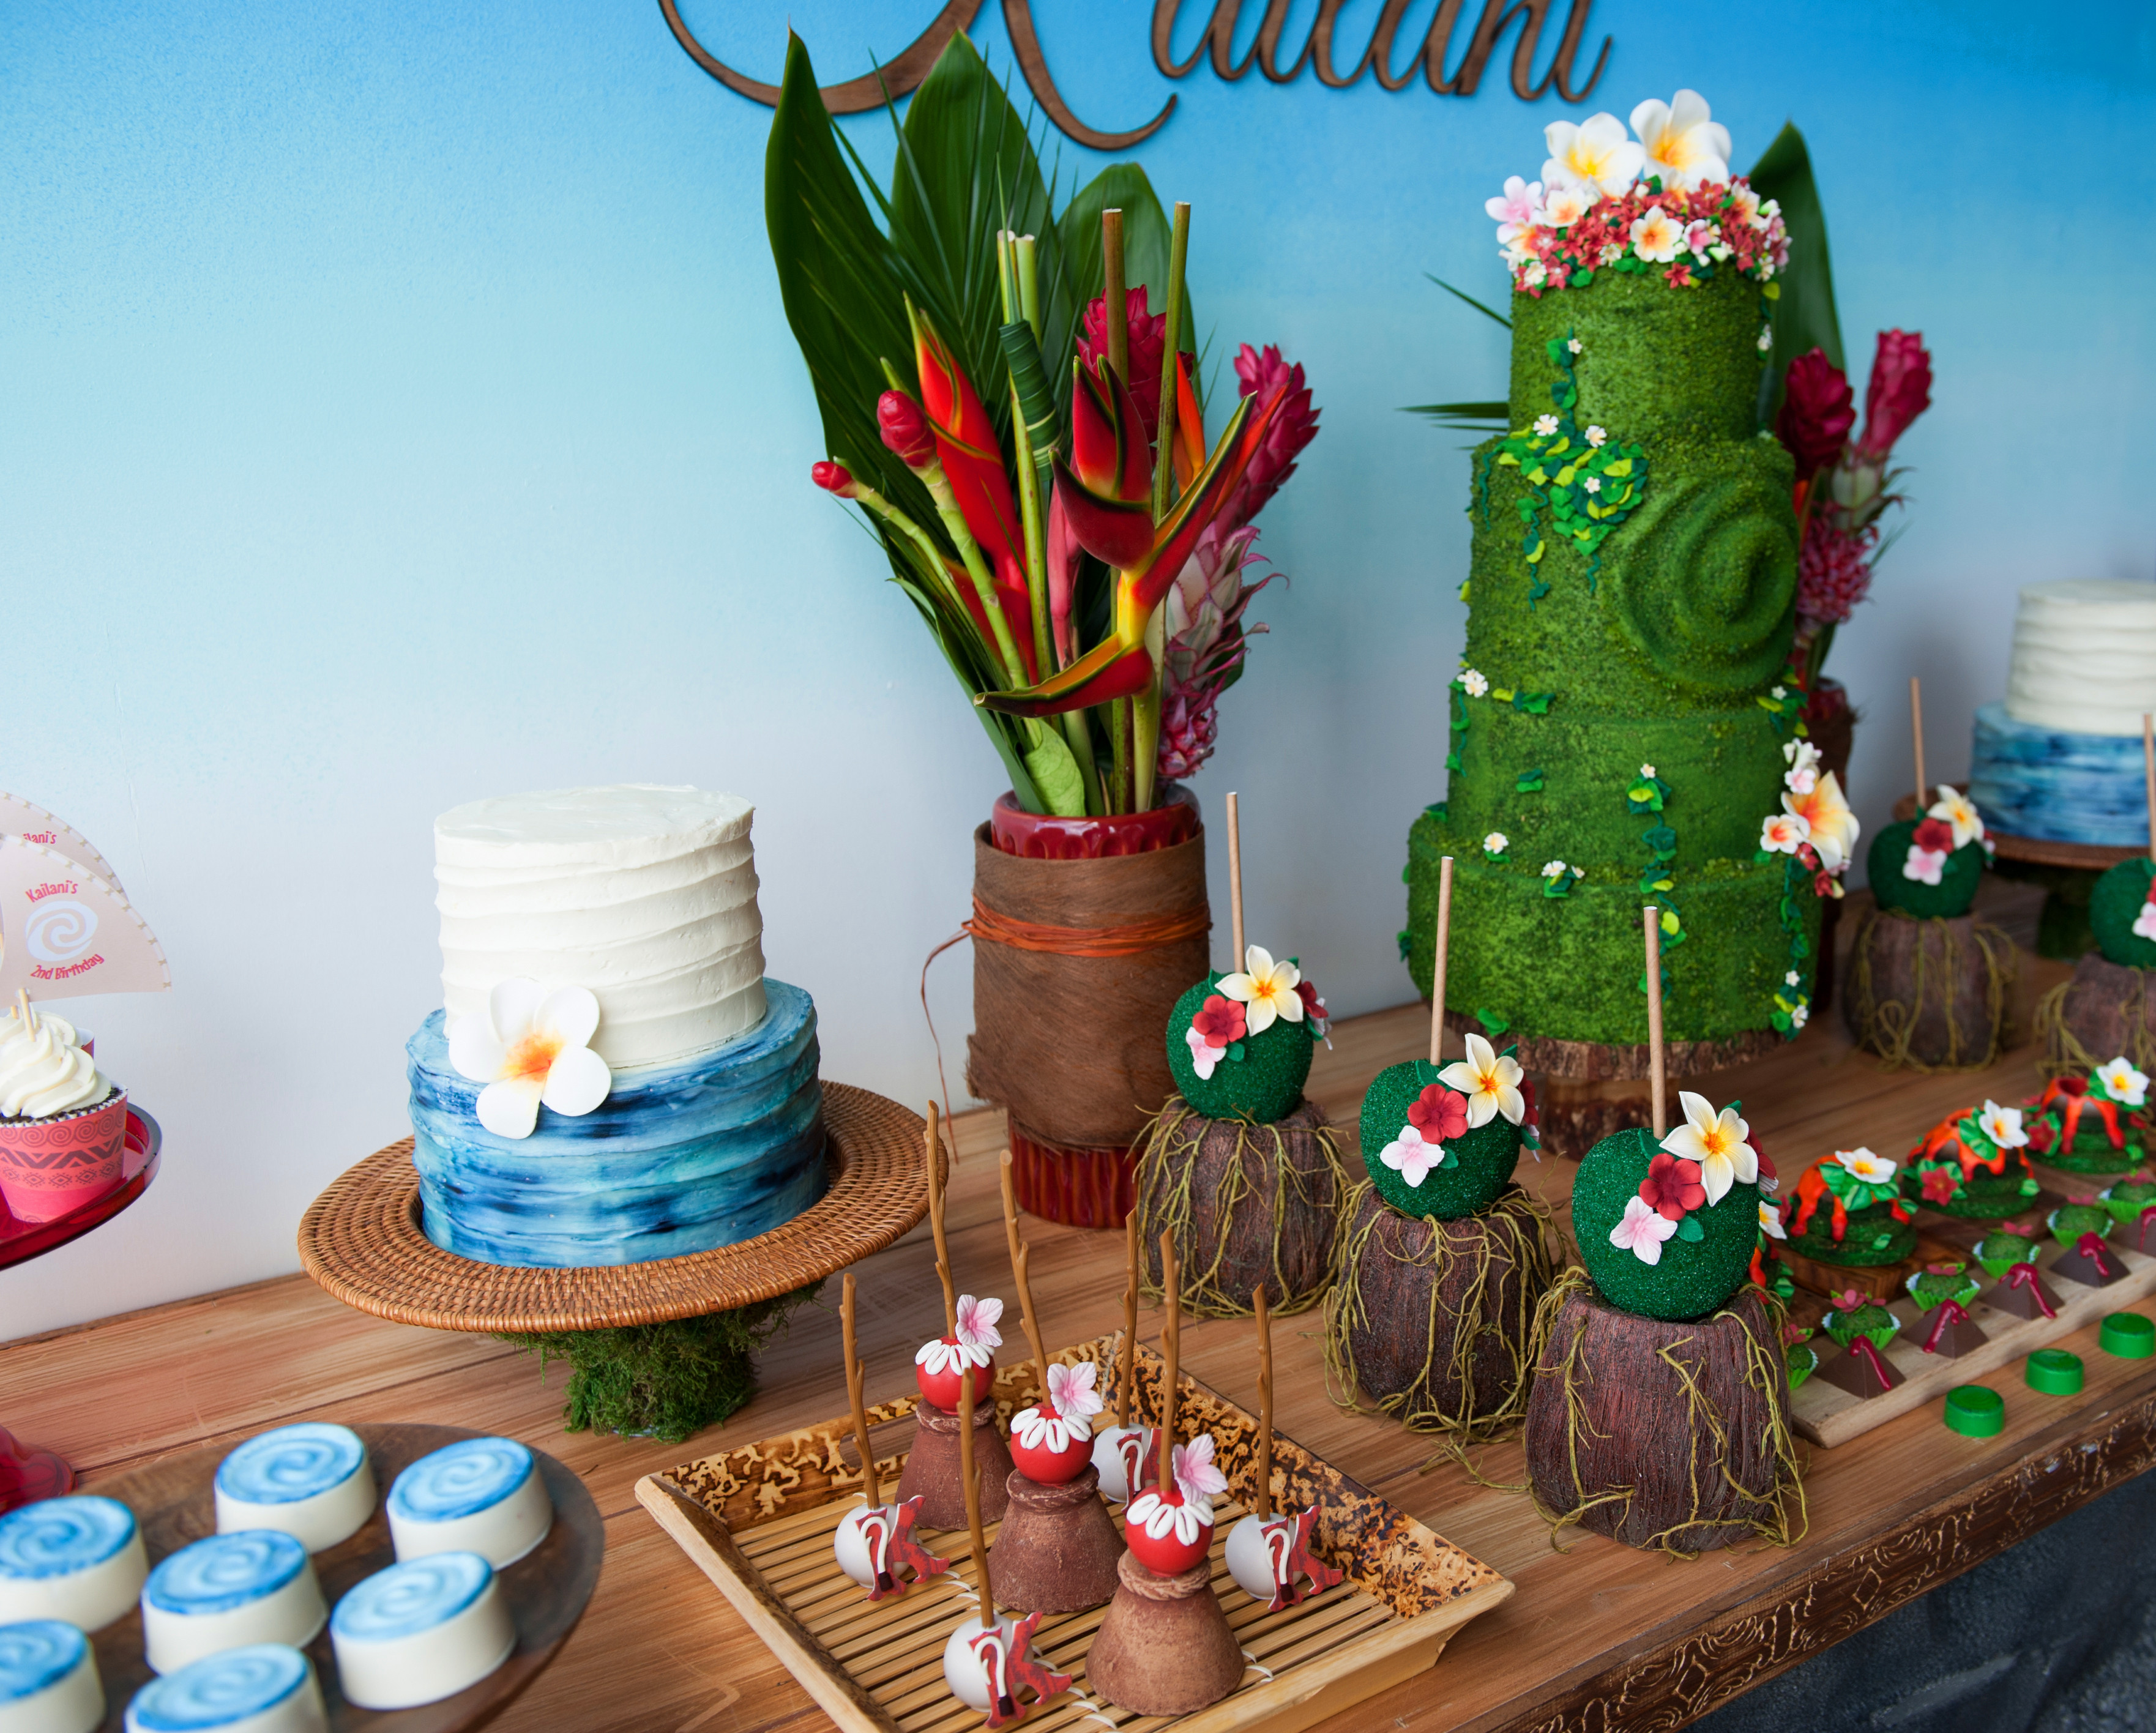 Best ideas about Moana Birthday Party . Save or Pin Moana Themed Birthday Party Now.